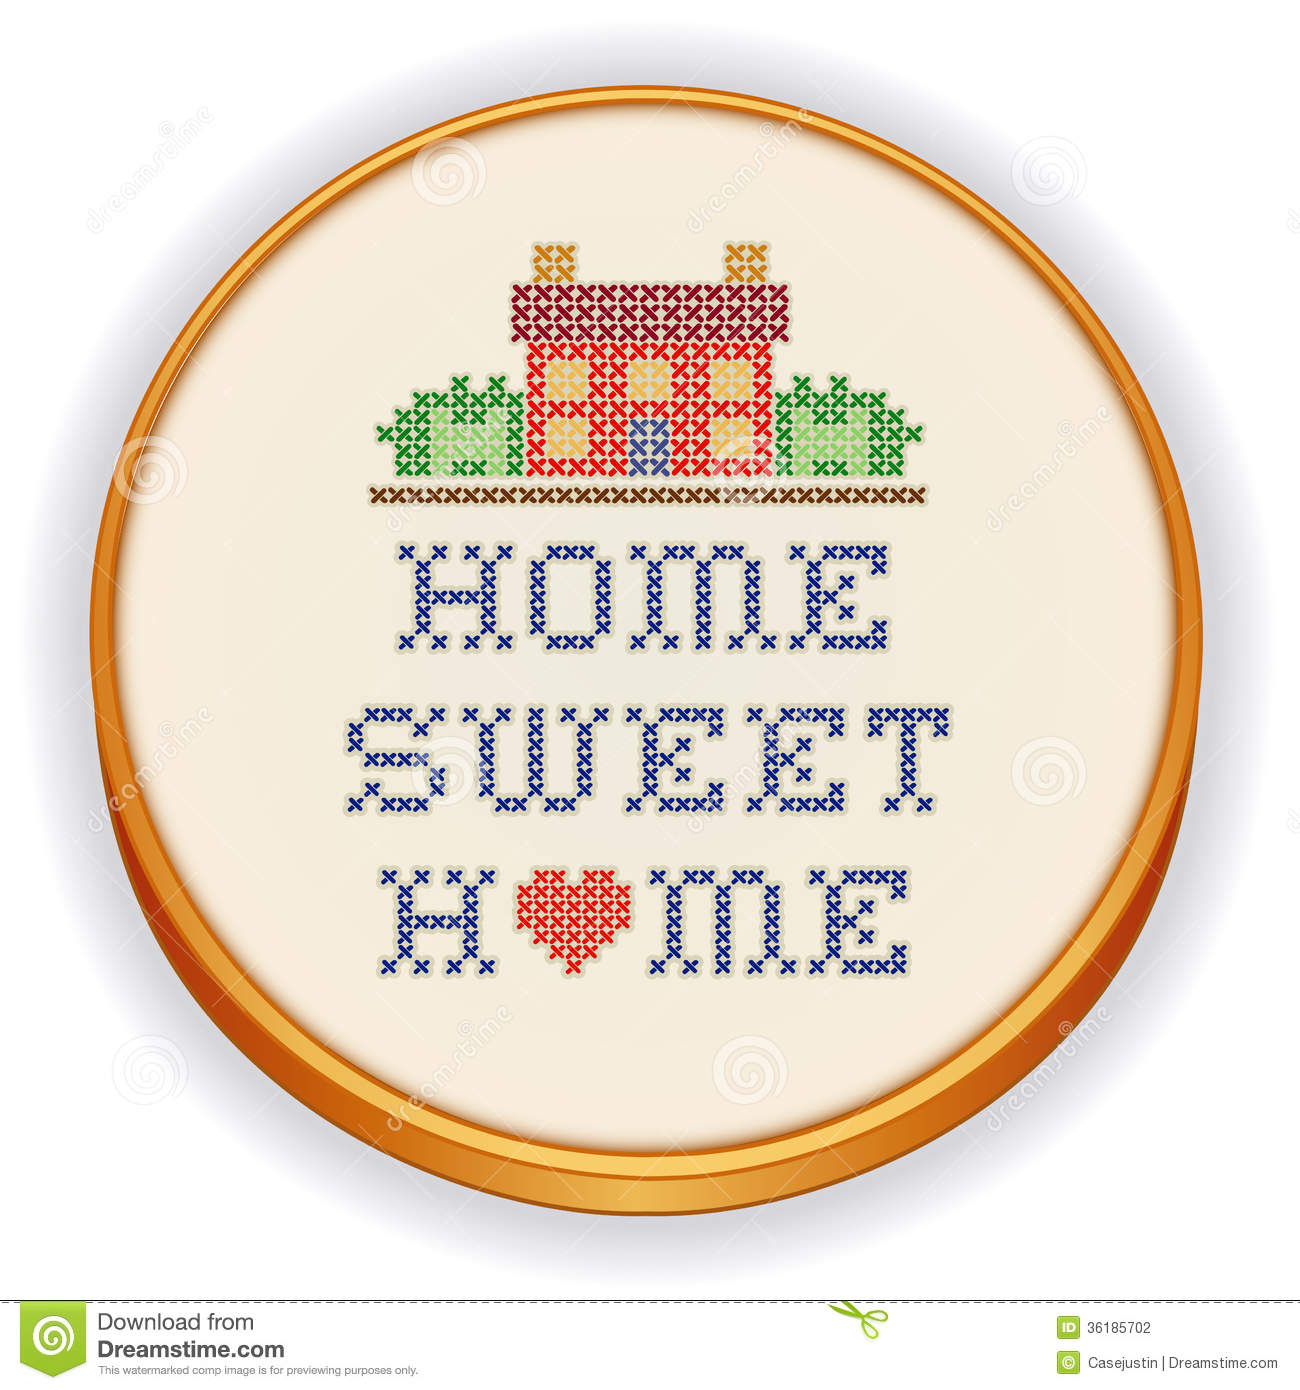 Embroidery Home Sweet Home Cross Stitch, Wood Hoop Stock Vector.